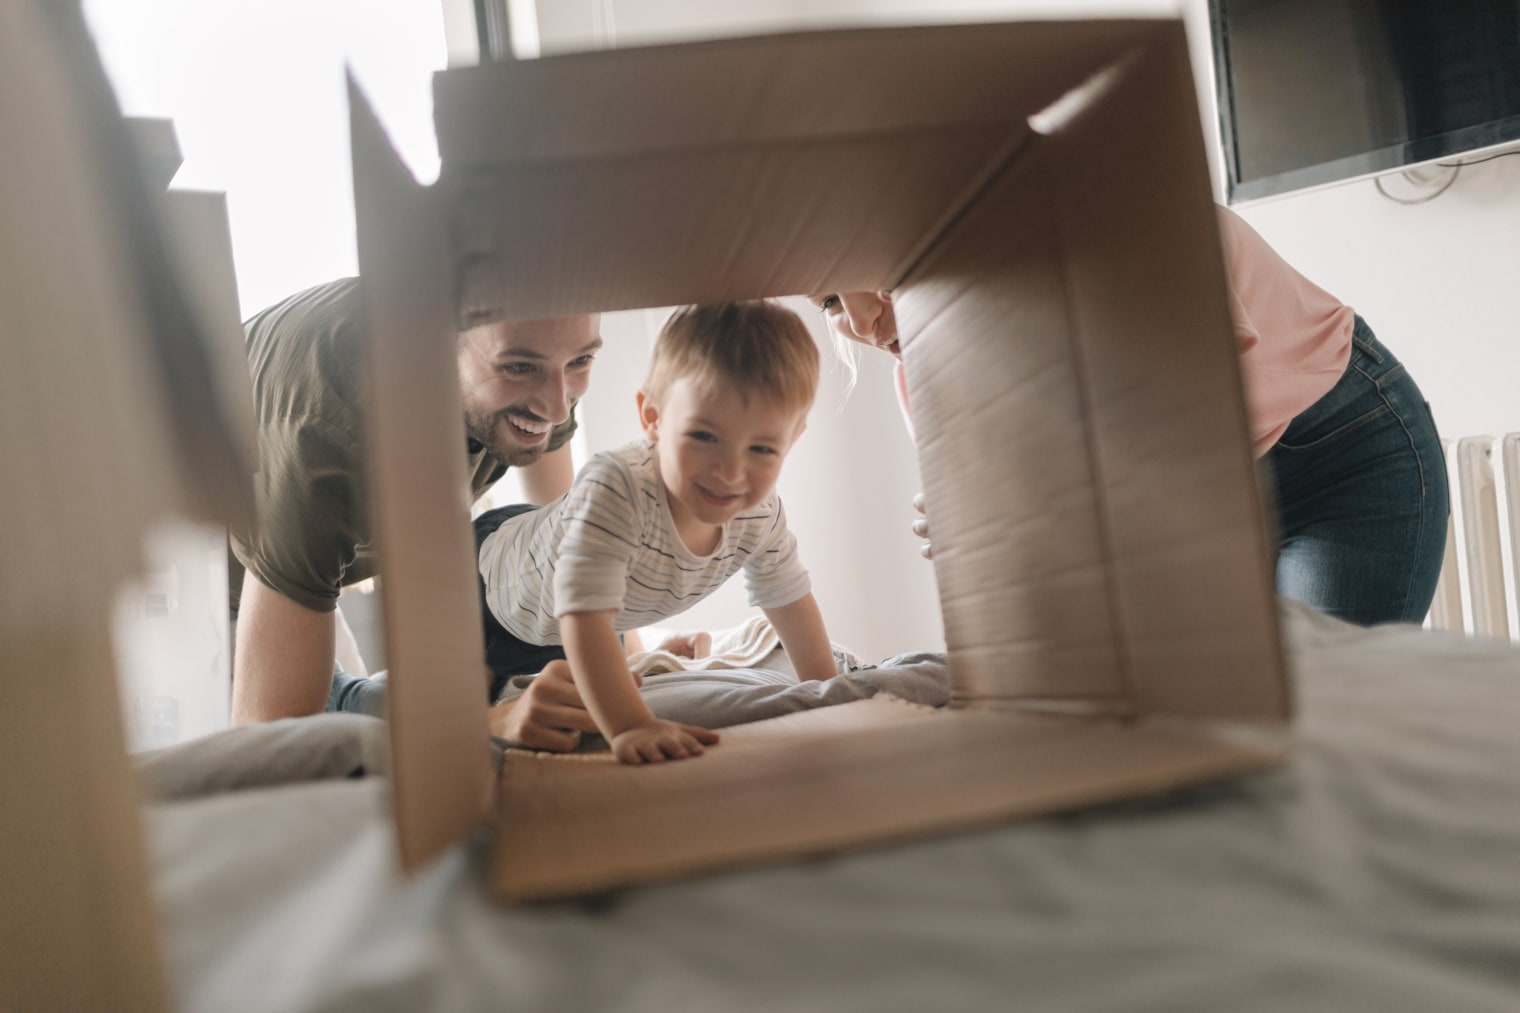 A toddler is smiling as he crawls through a tunnel made out of a cardboard box. A man and a woman, also smiling, can be seen behind him.